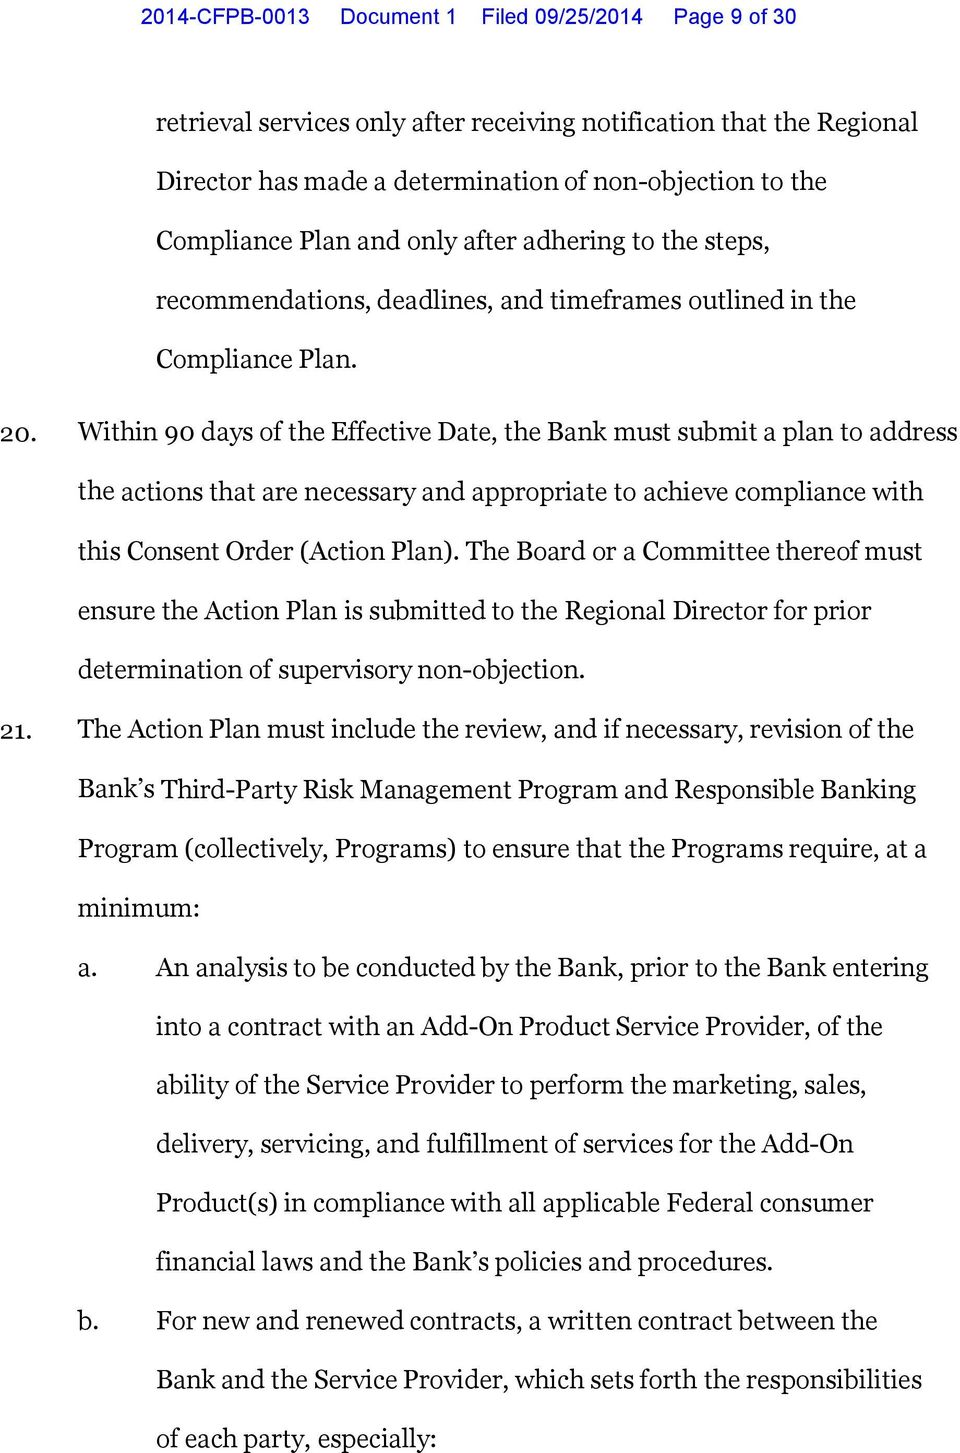 Within 90 days of the Effective Date, the Bank must submit a plan to address the actions that are necessary and appropriate to achieve compliance with this Consent Order (Action Plan).